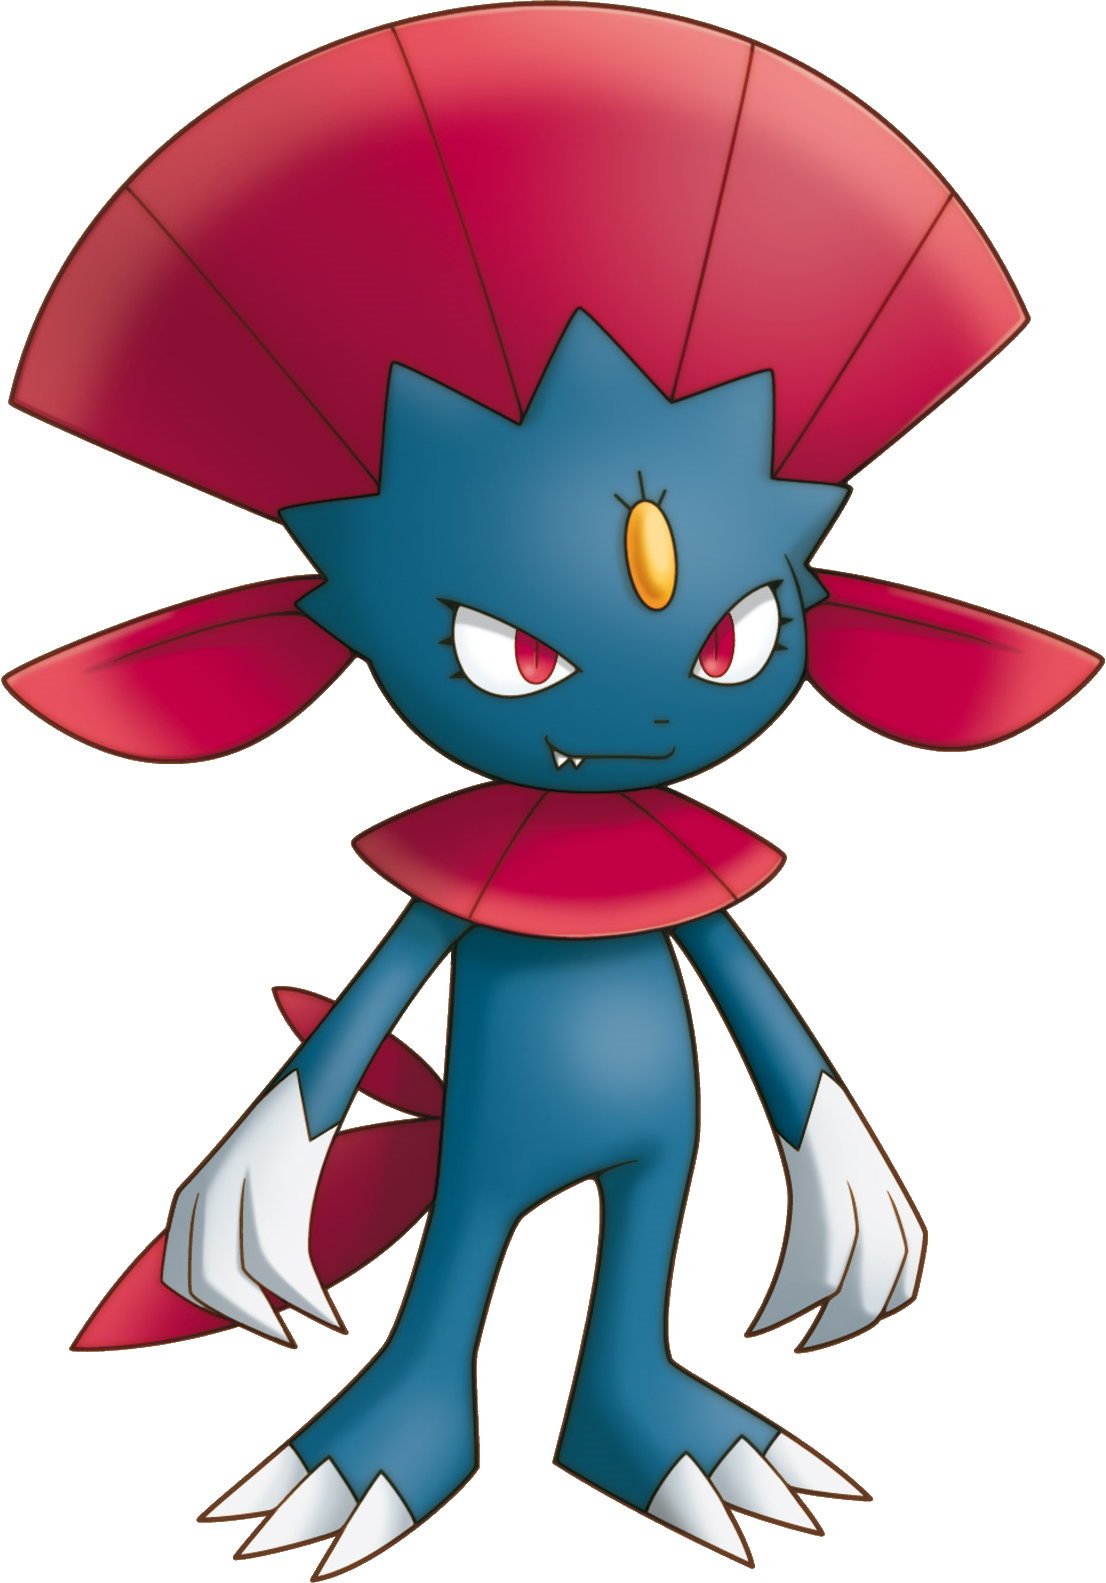 How do you beat Sneasel and Weavile in Pokemon Go? ~ ToyLab